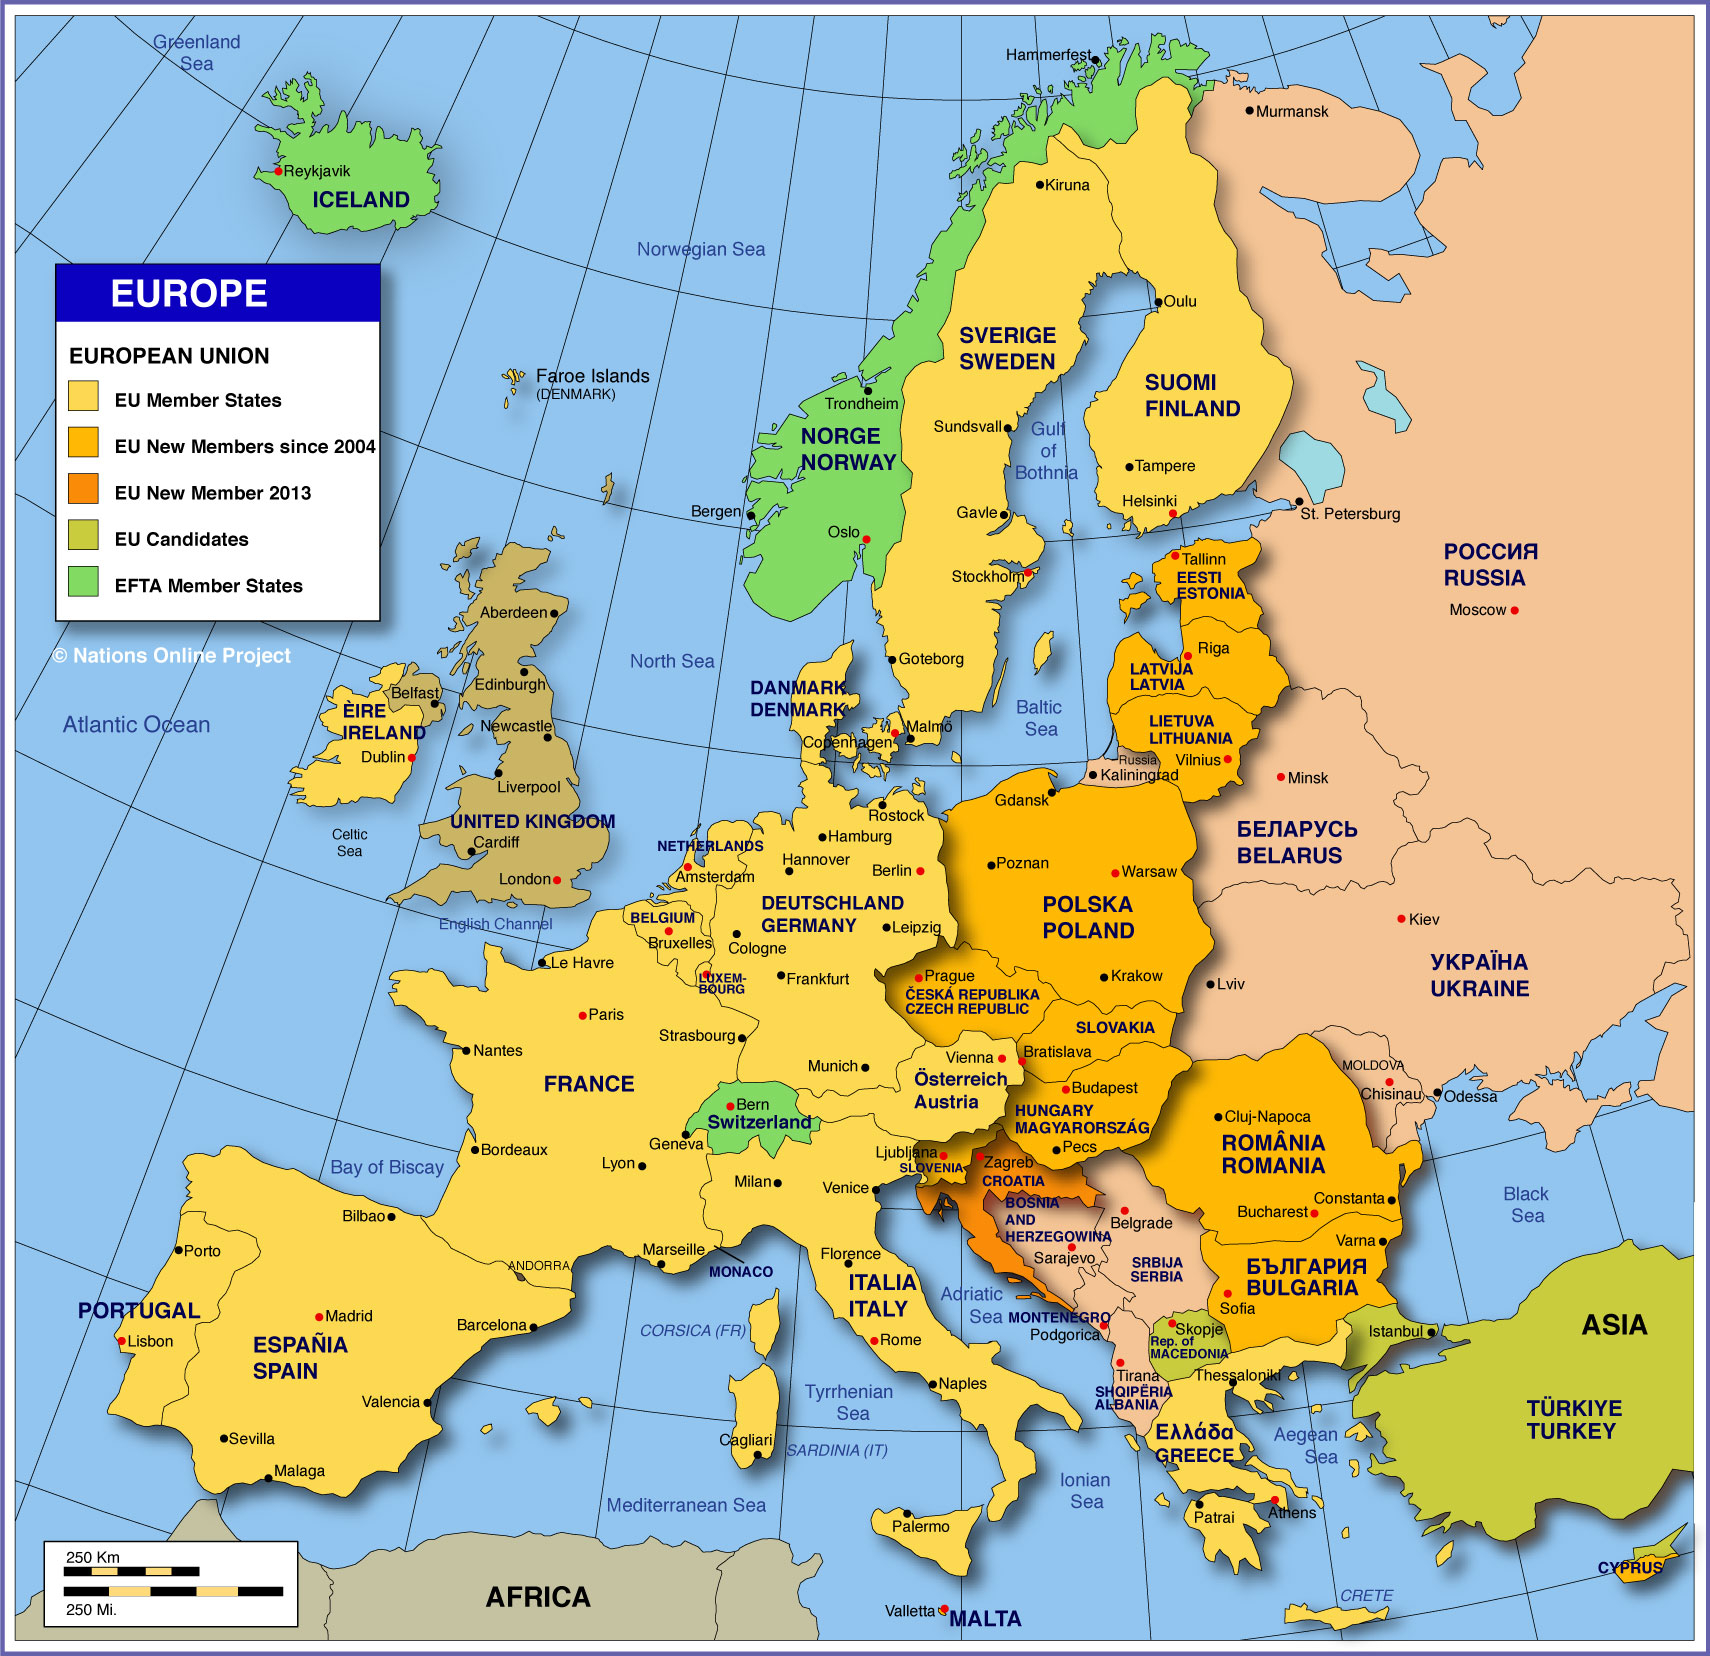 airports in europe map Map Of Europe Member States Of The Eu Nations Online Project airports in europe map